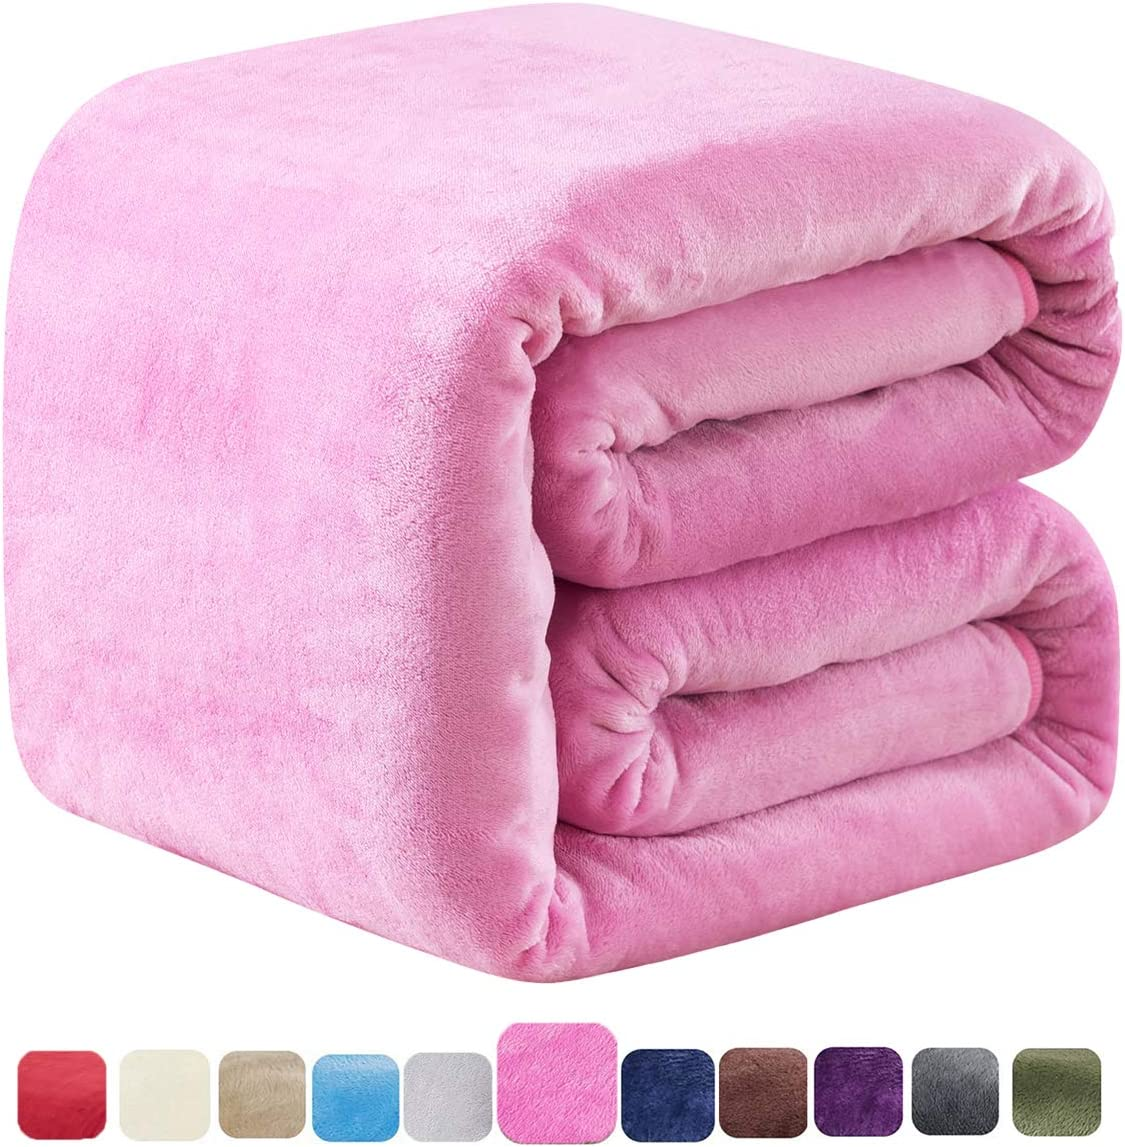 SOFTCARE Soft Twin Size Summer Blanket All Season 350GSM Thicken Warm Fuzzy Microplush Lightweight Thermal Fleece Blankets for Couch Bed Sofa Pink 66 90